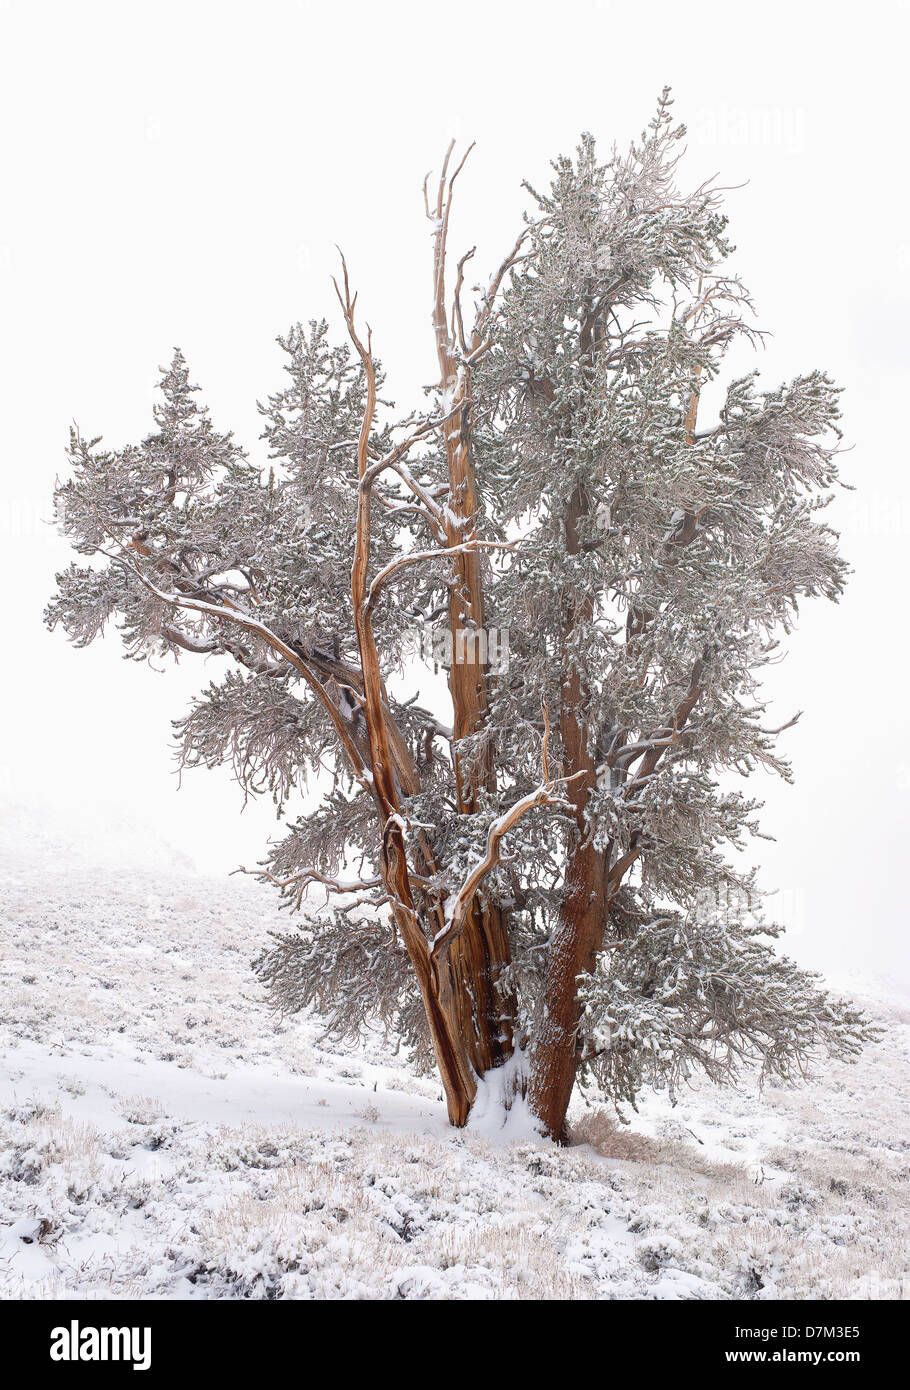 USA, California, Conifer with hoarfrost - Stock Image